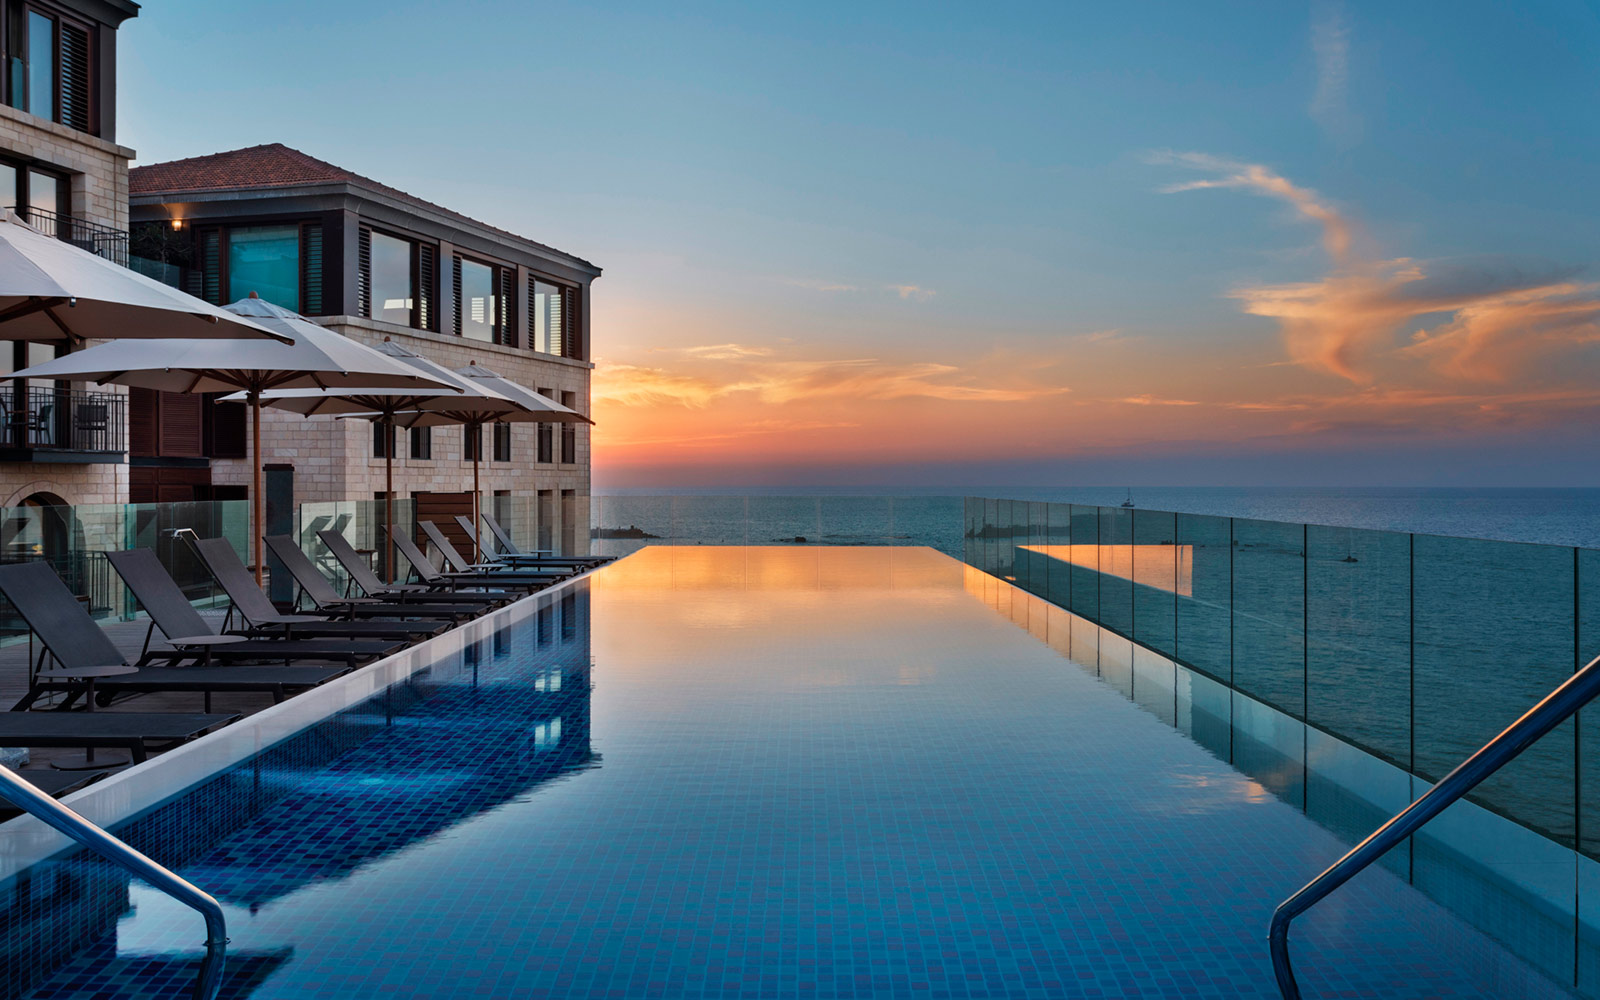 You Haven't Seen the Sunset Until You've Visited This Rooftop Infinity Pool Overlooking the Mediterranean